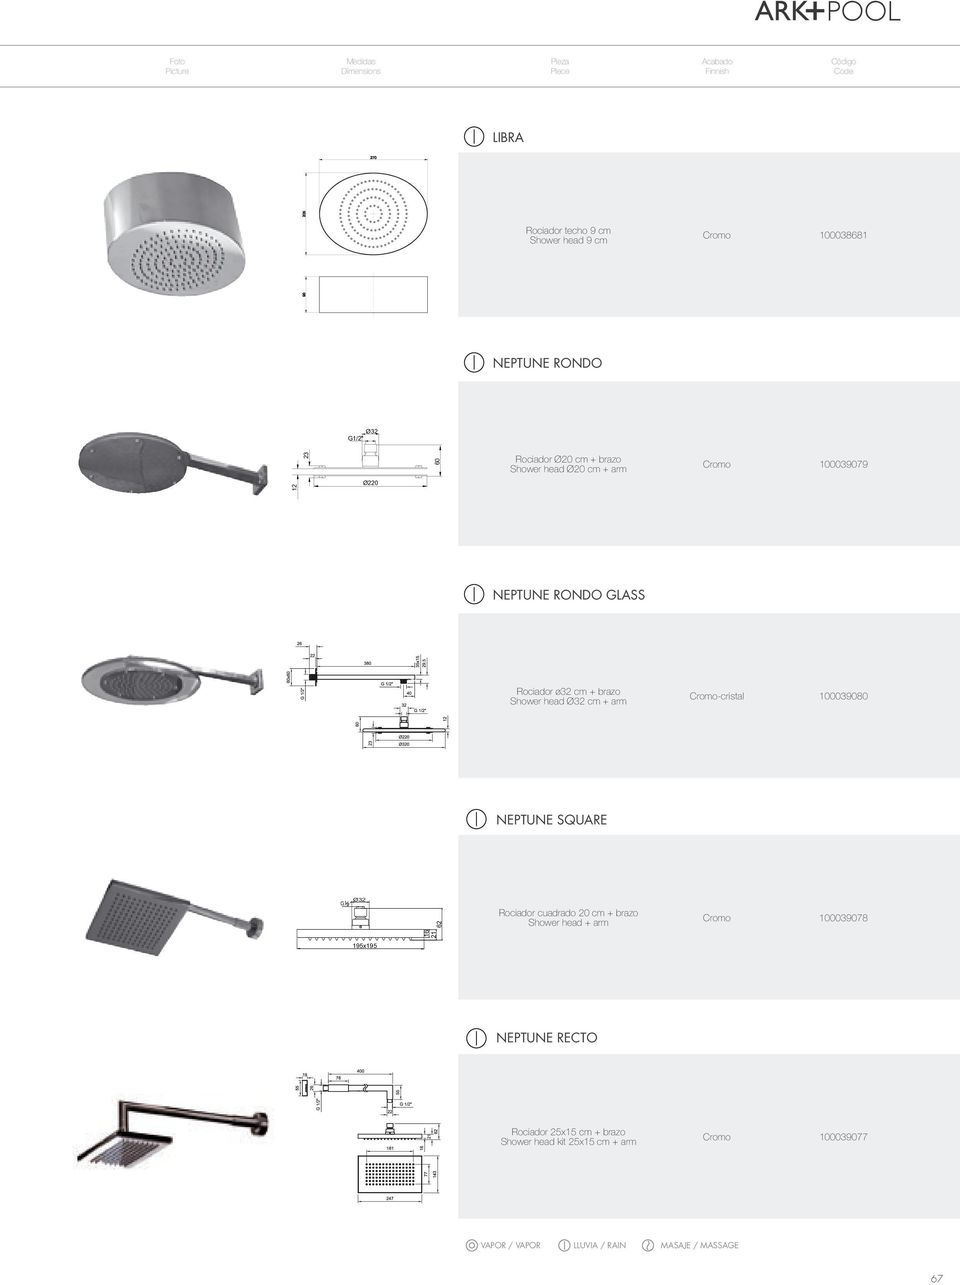 brazo Shower head Ø32 cm + arm Cromo-cristal 100039080 NEPTUNE SQUARE Ø32 16 21 62 Rociador cuadrado 20 cm + brazo Shower head + arm Cromo